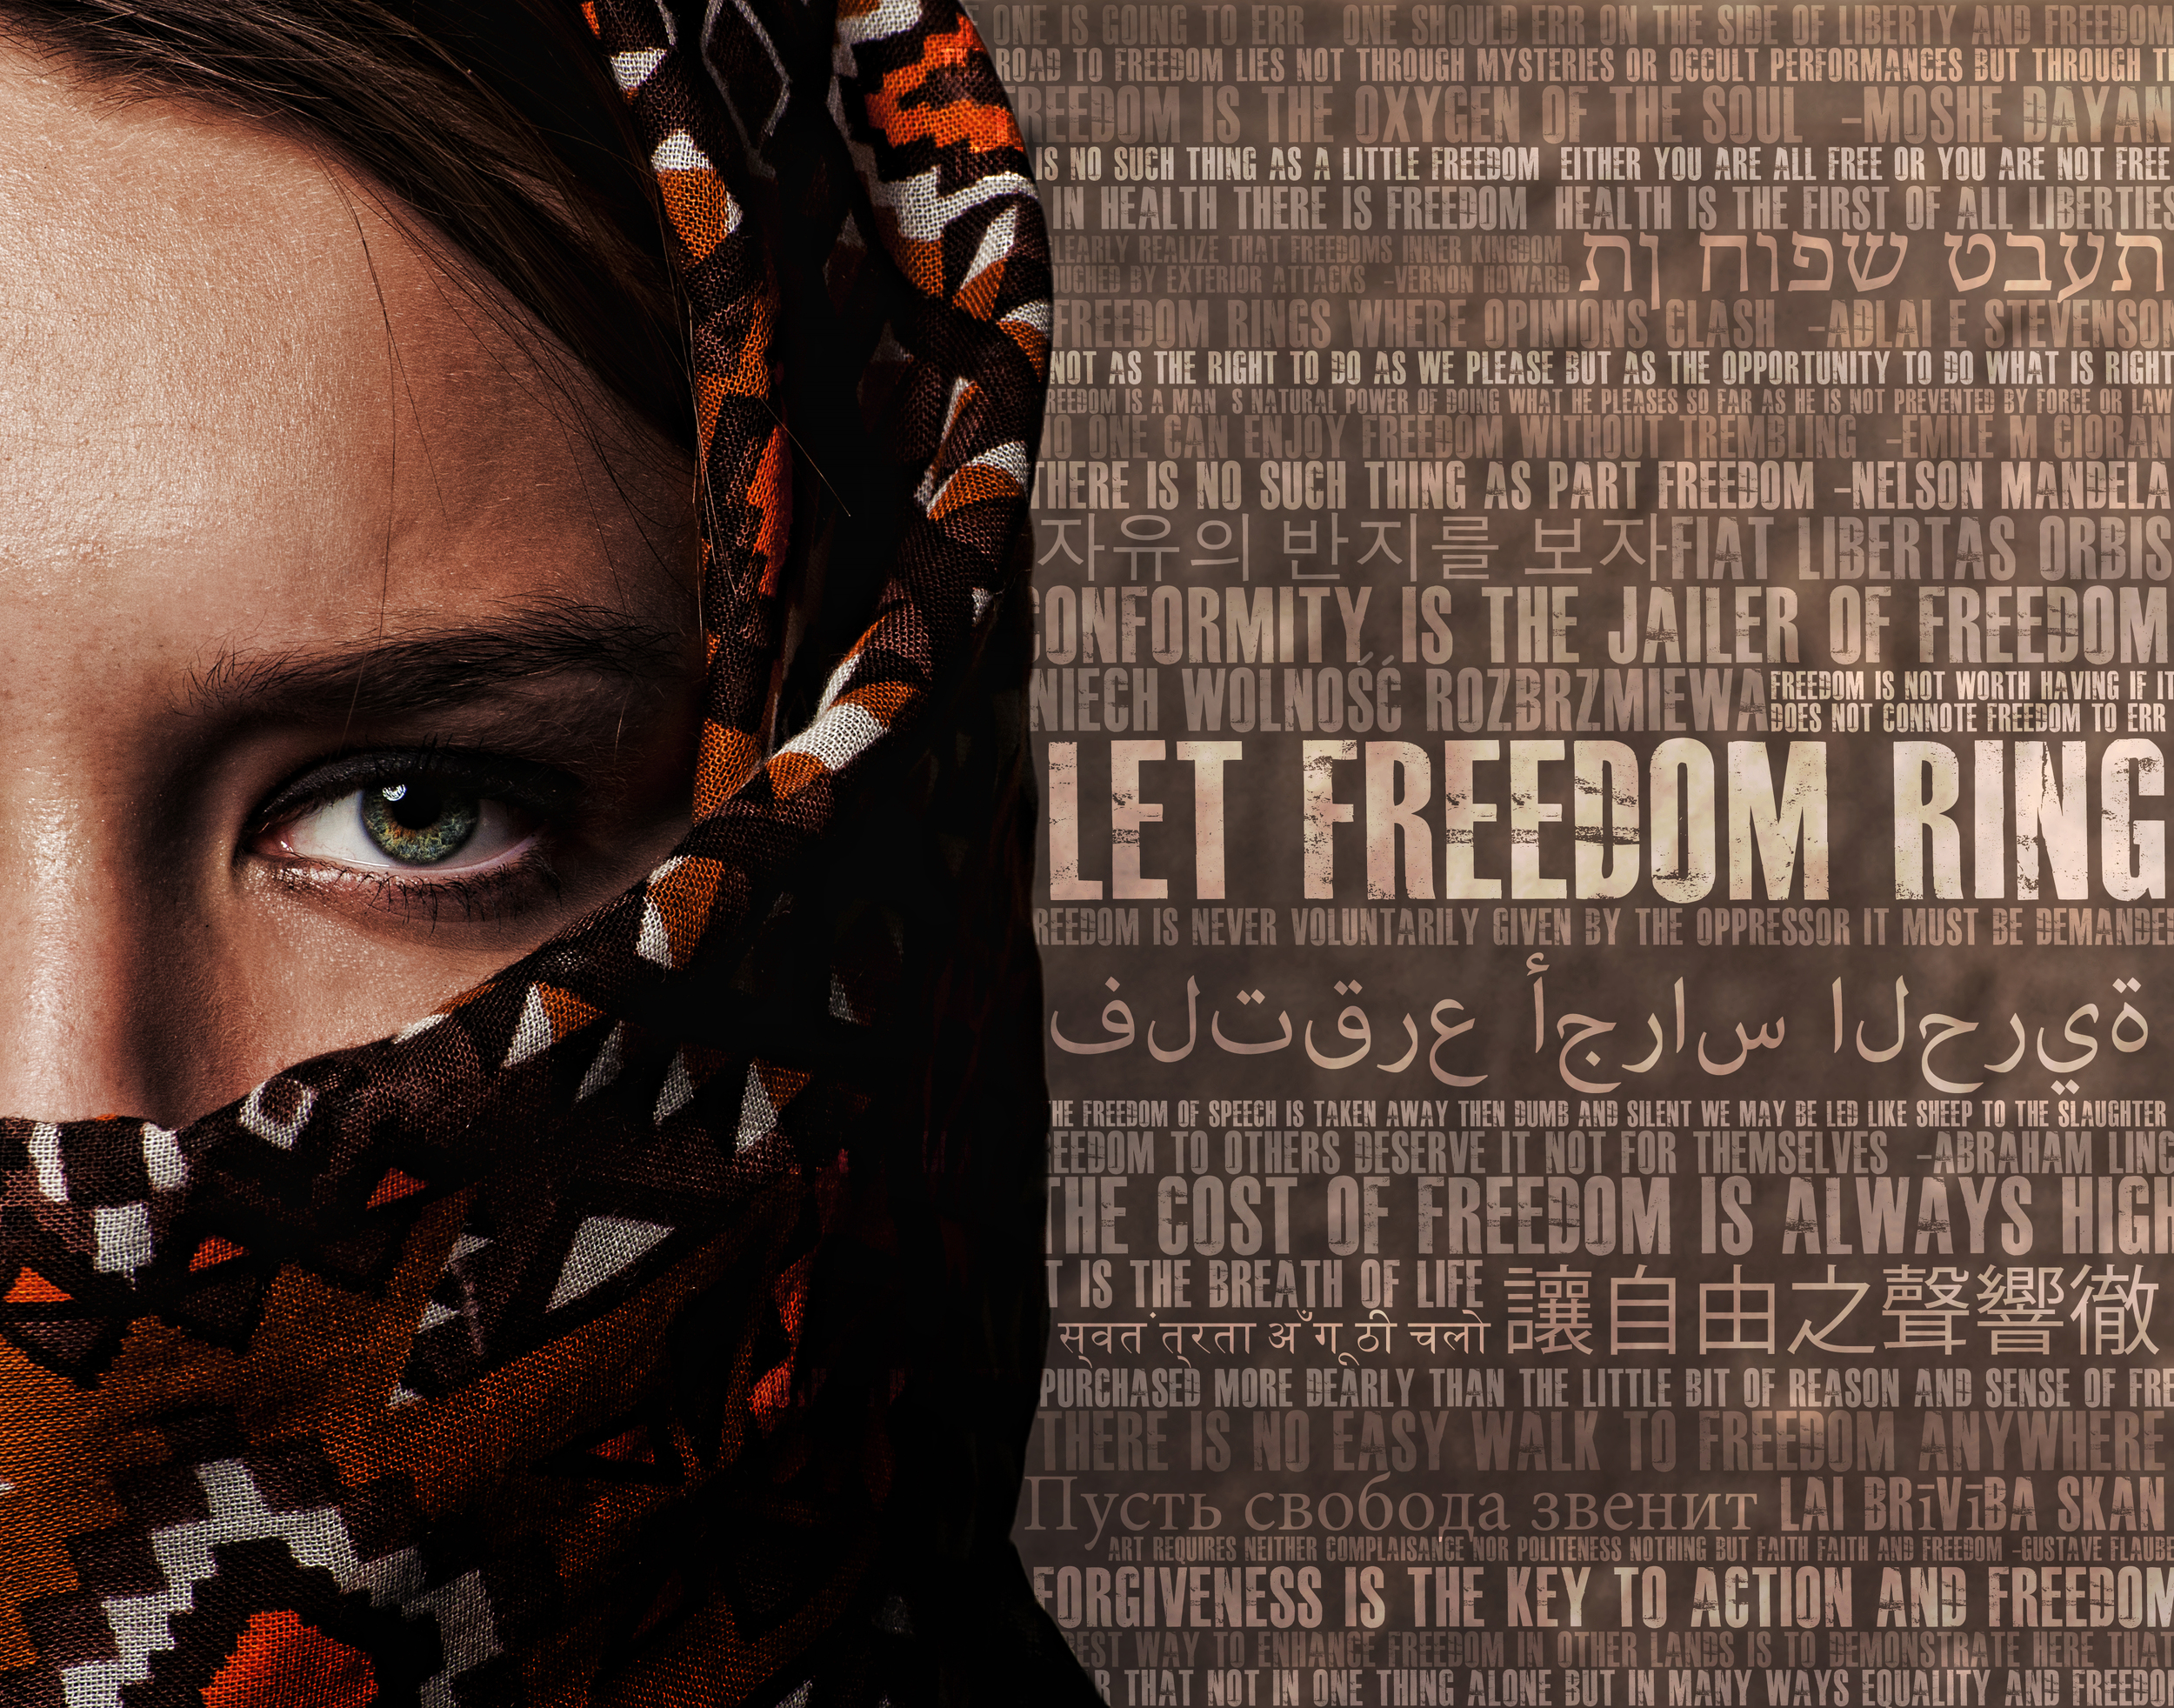 let_freedom_ring_by_cameofx-d4y4bn7.jpg